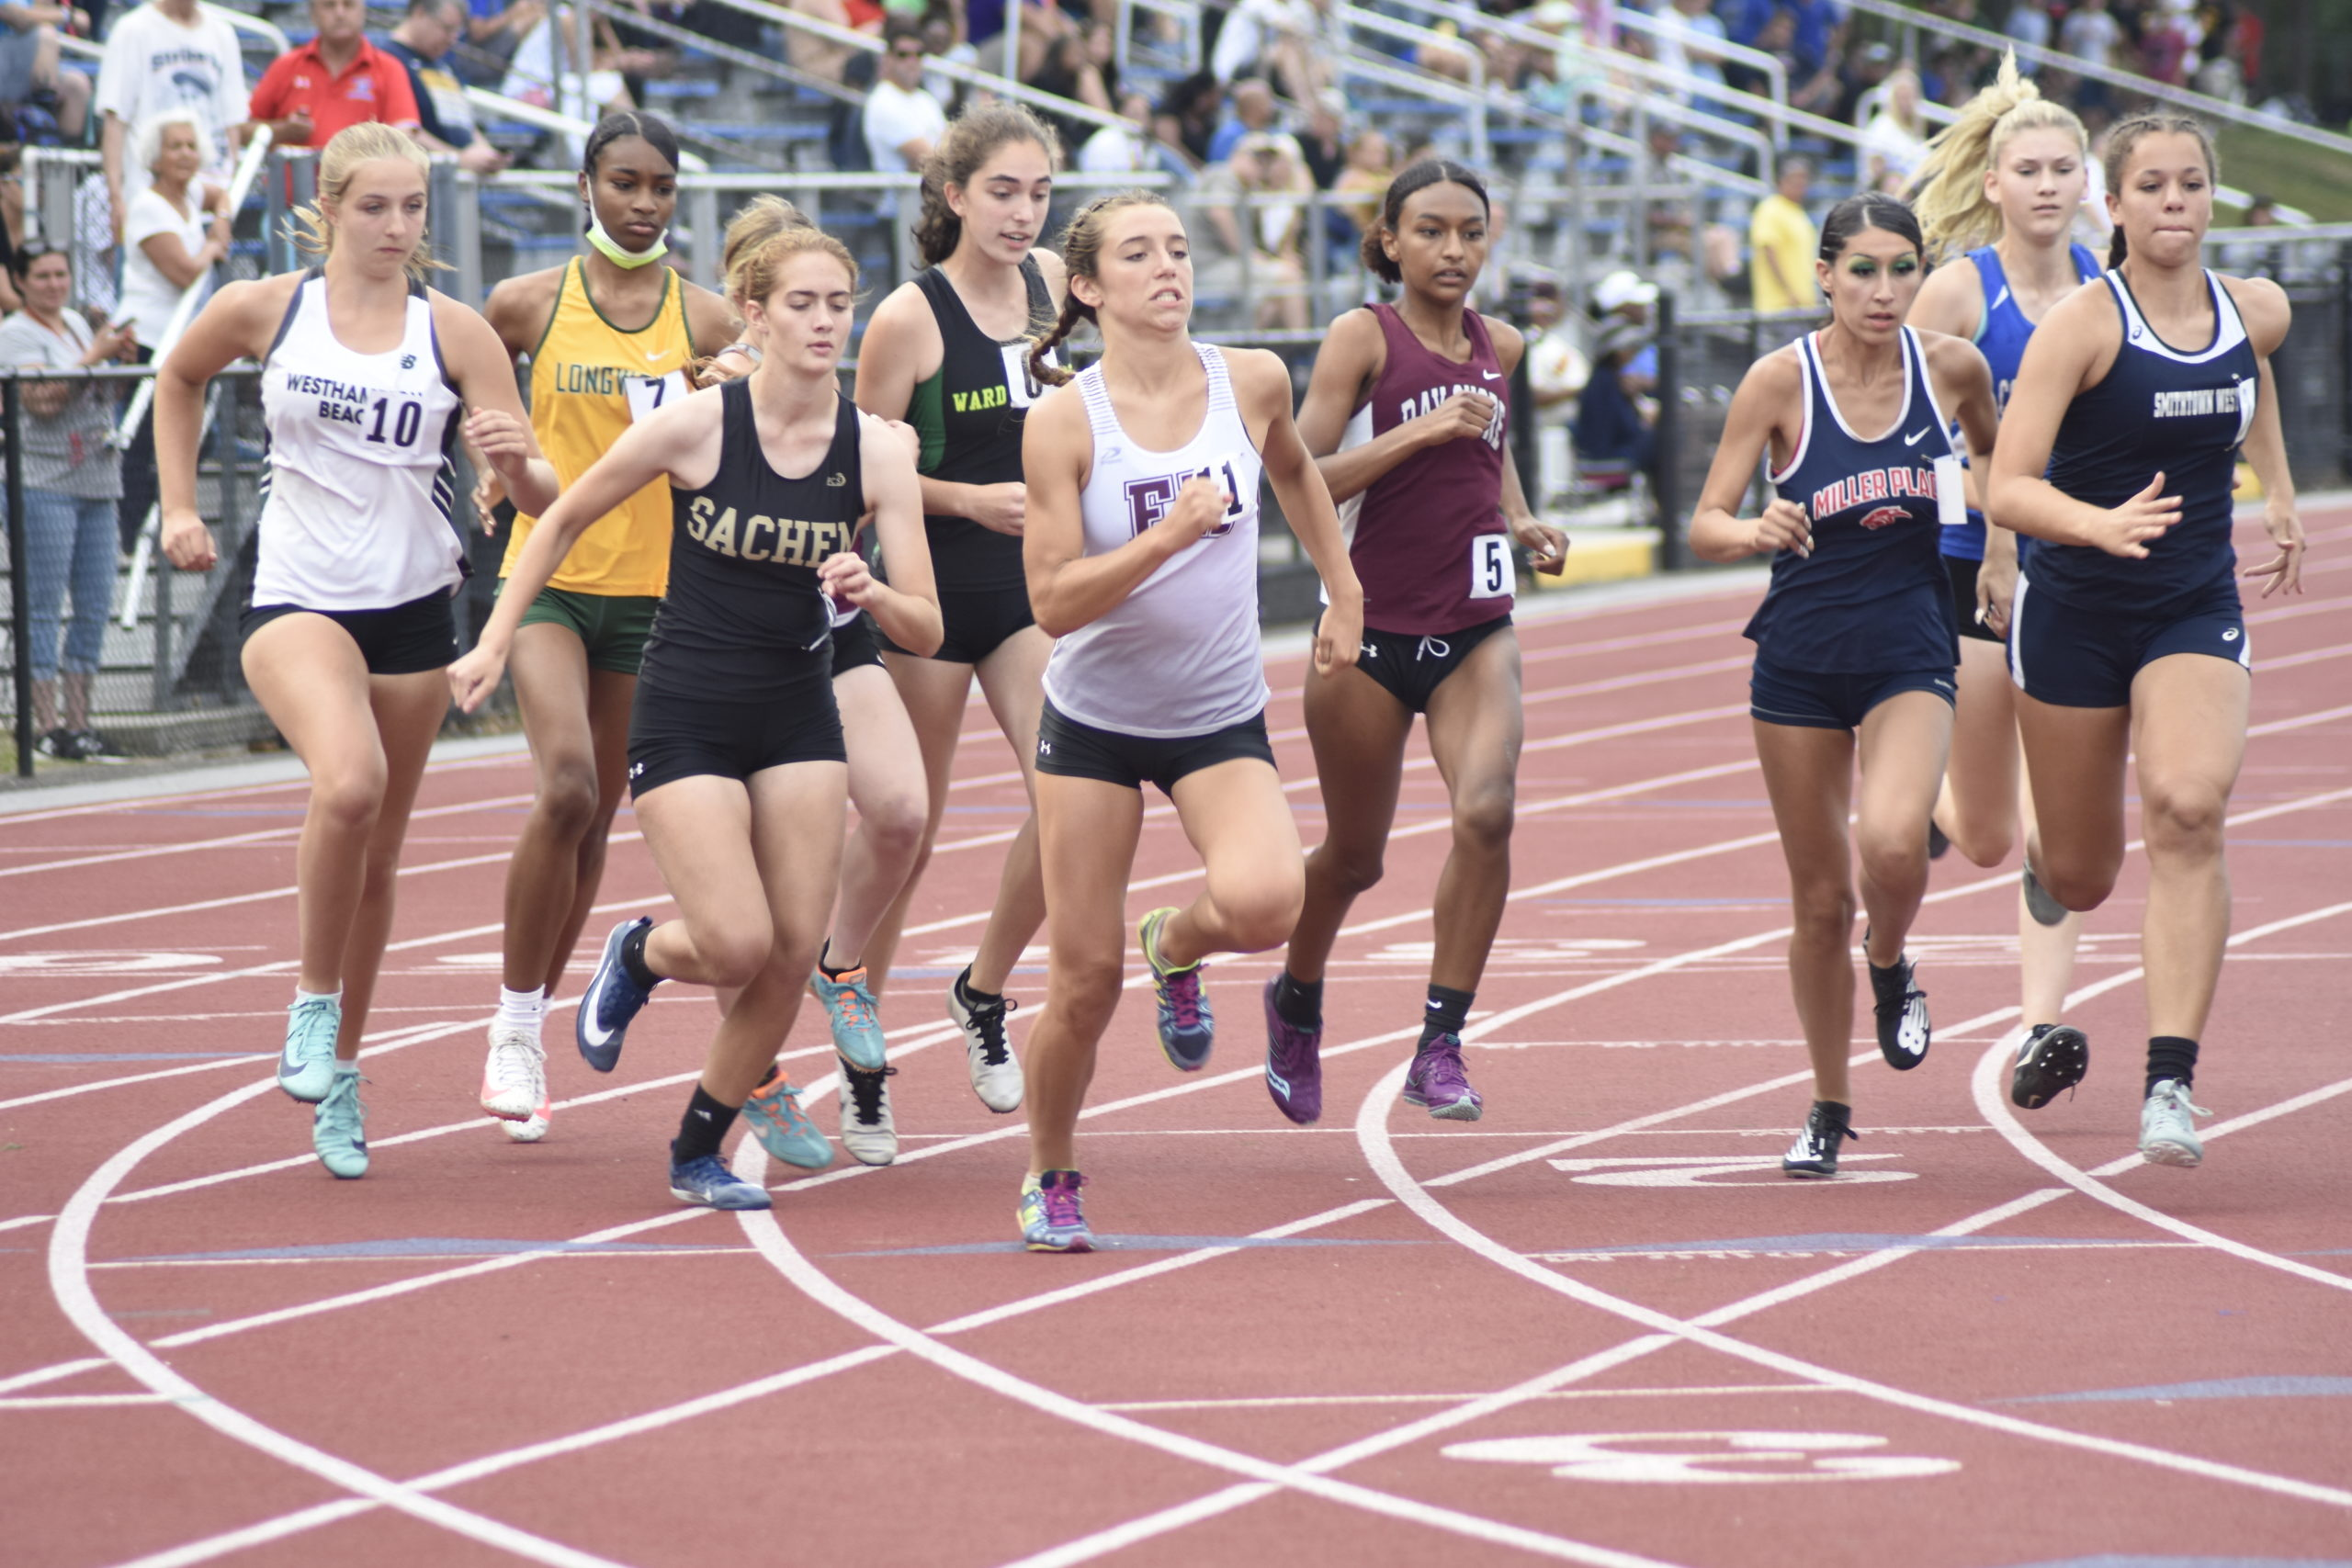 East Hampton senior Bella Tarbet darts over to the head of the pack at the start of the 800-meter run portion of the pentathlon.